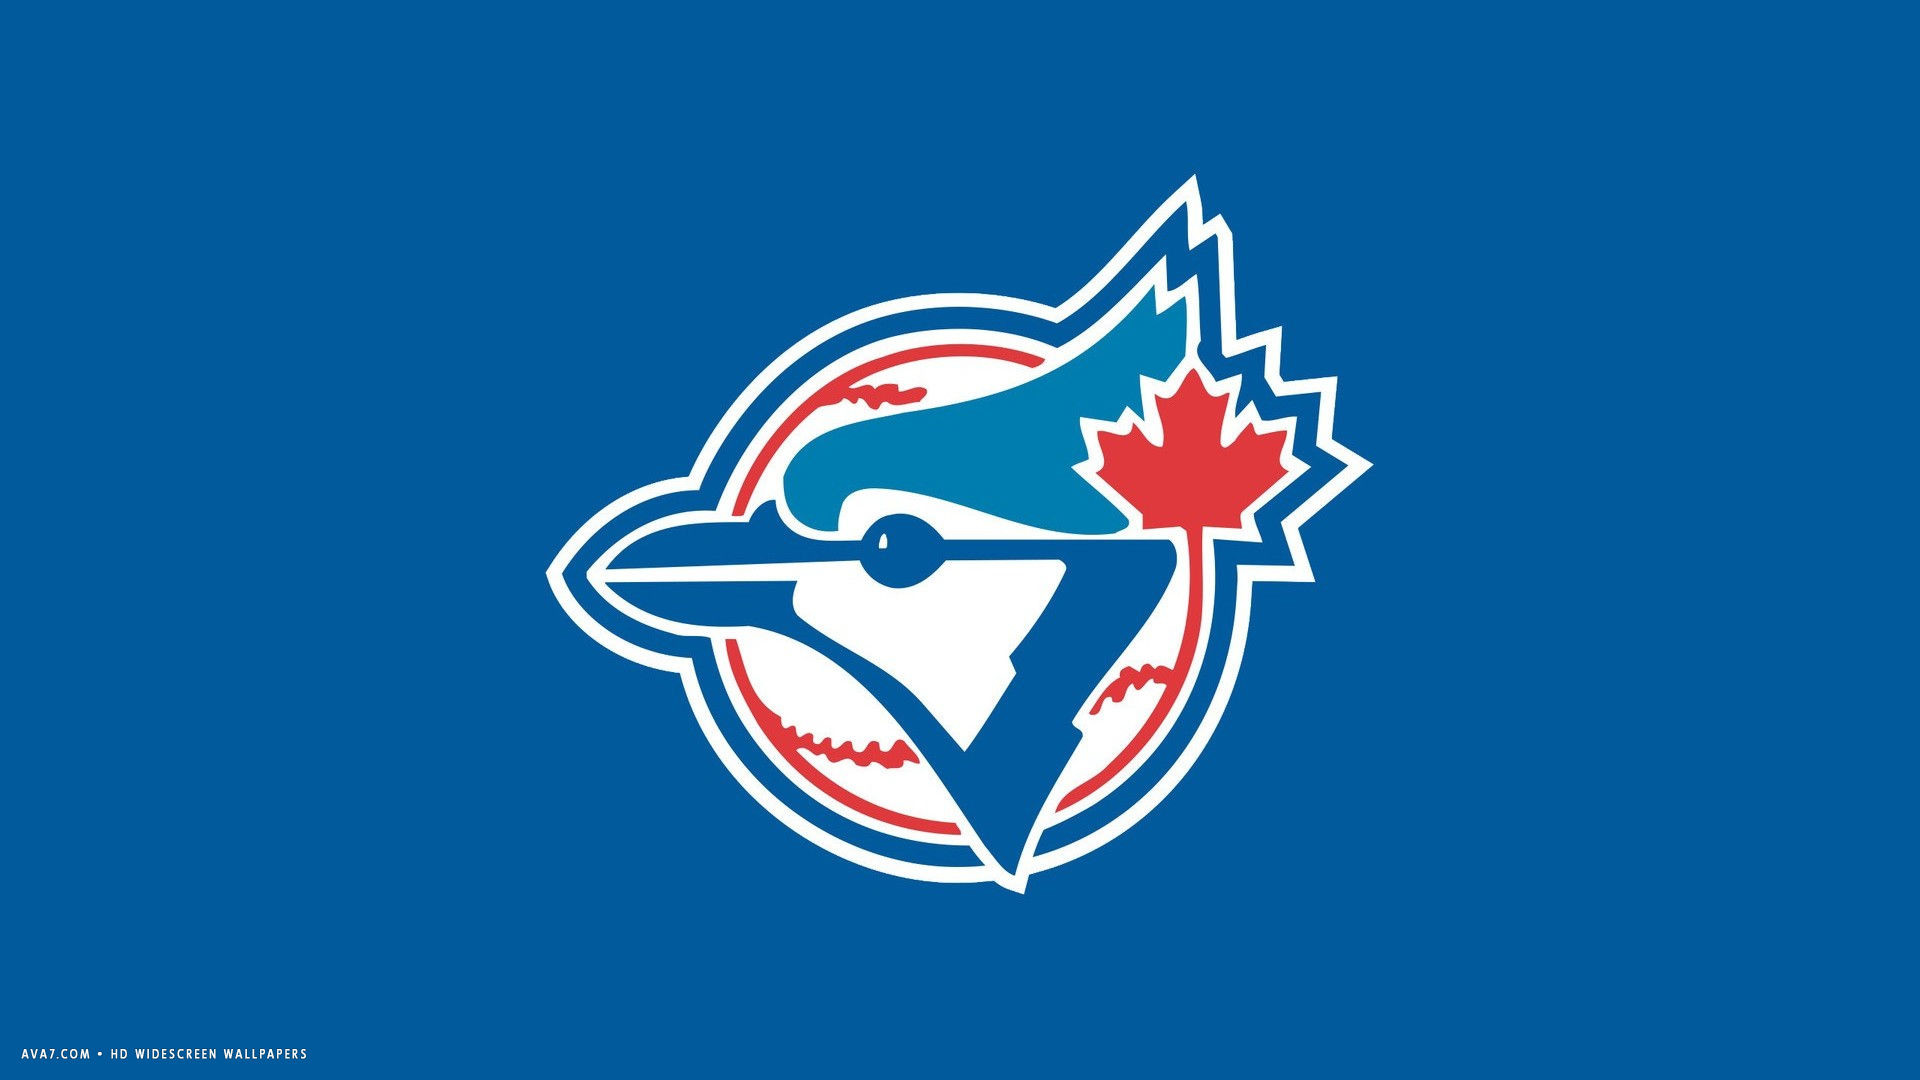 1920x1080 toronto blue jays mlb baseball team hd widescreen wallpaper